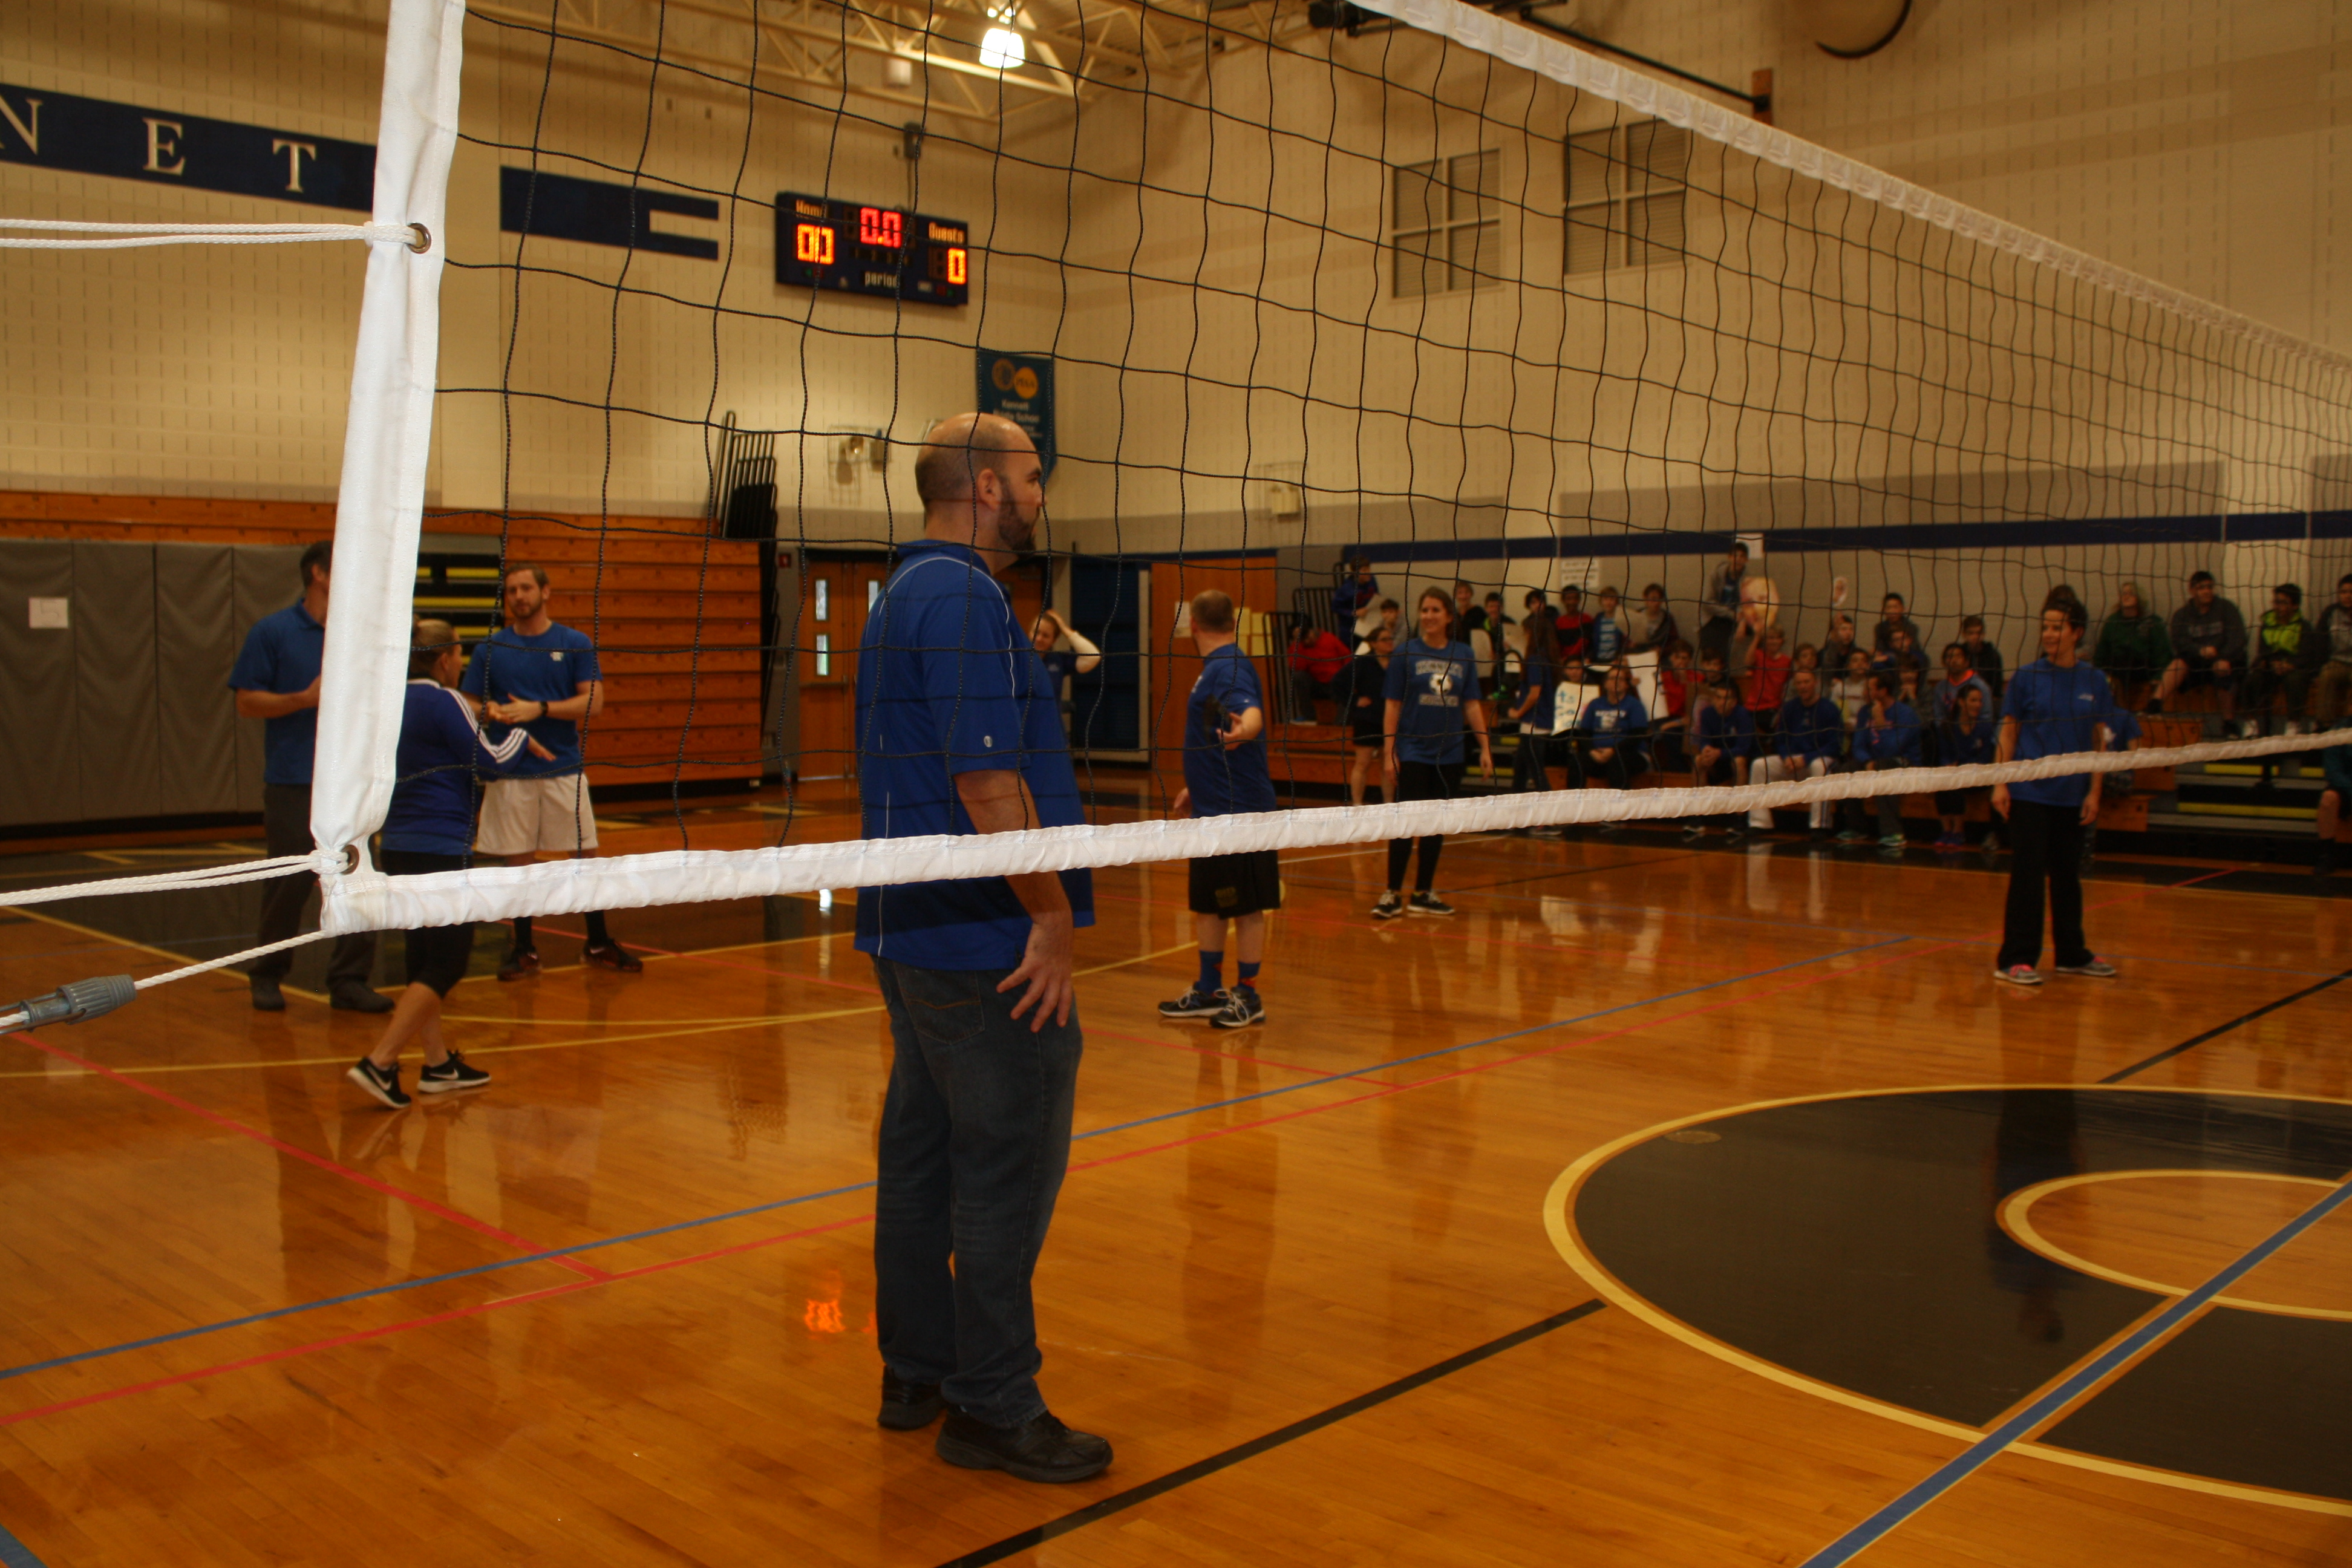 team team on the volleyball court